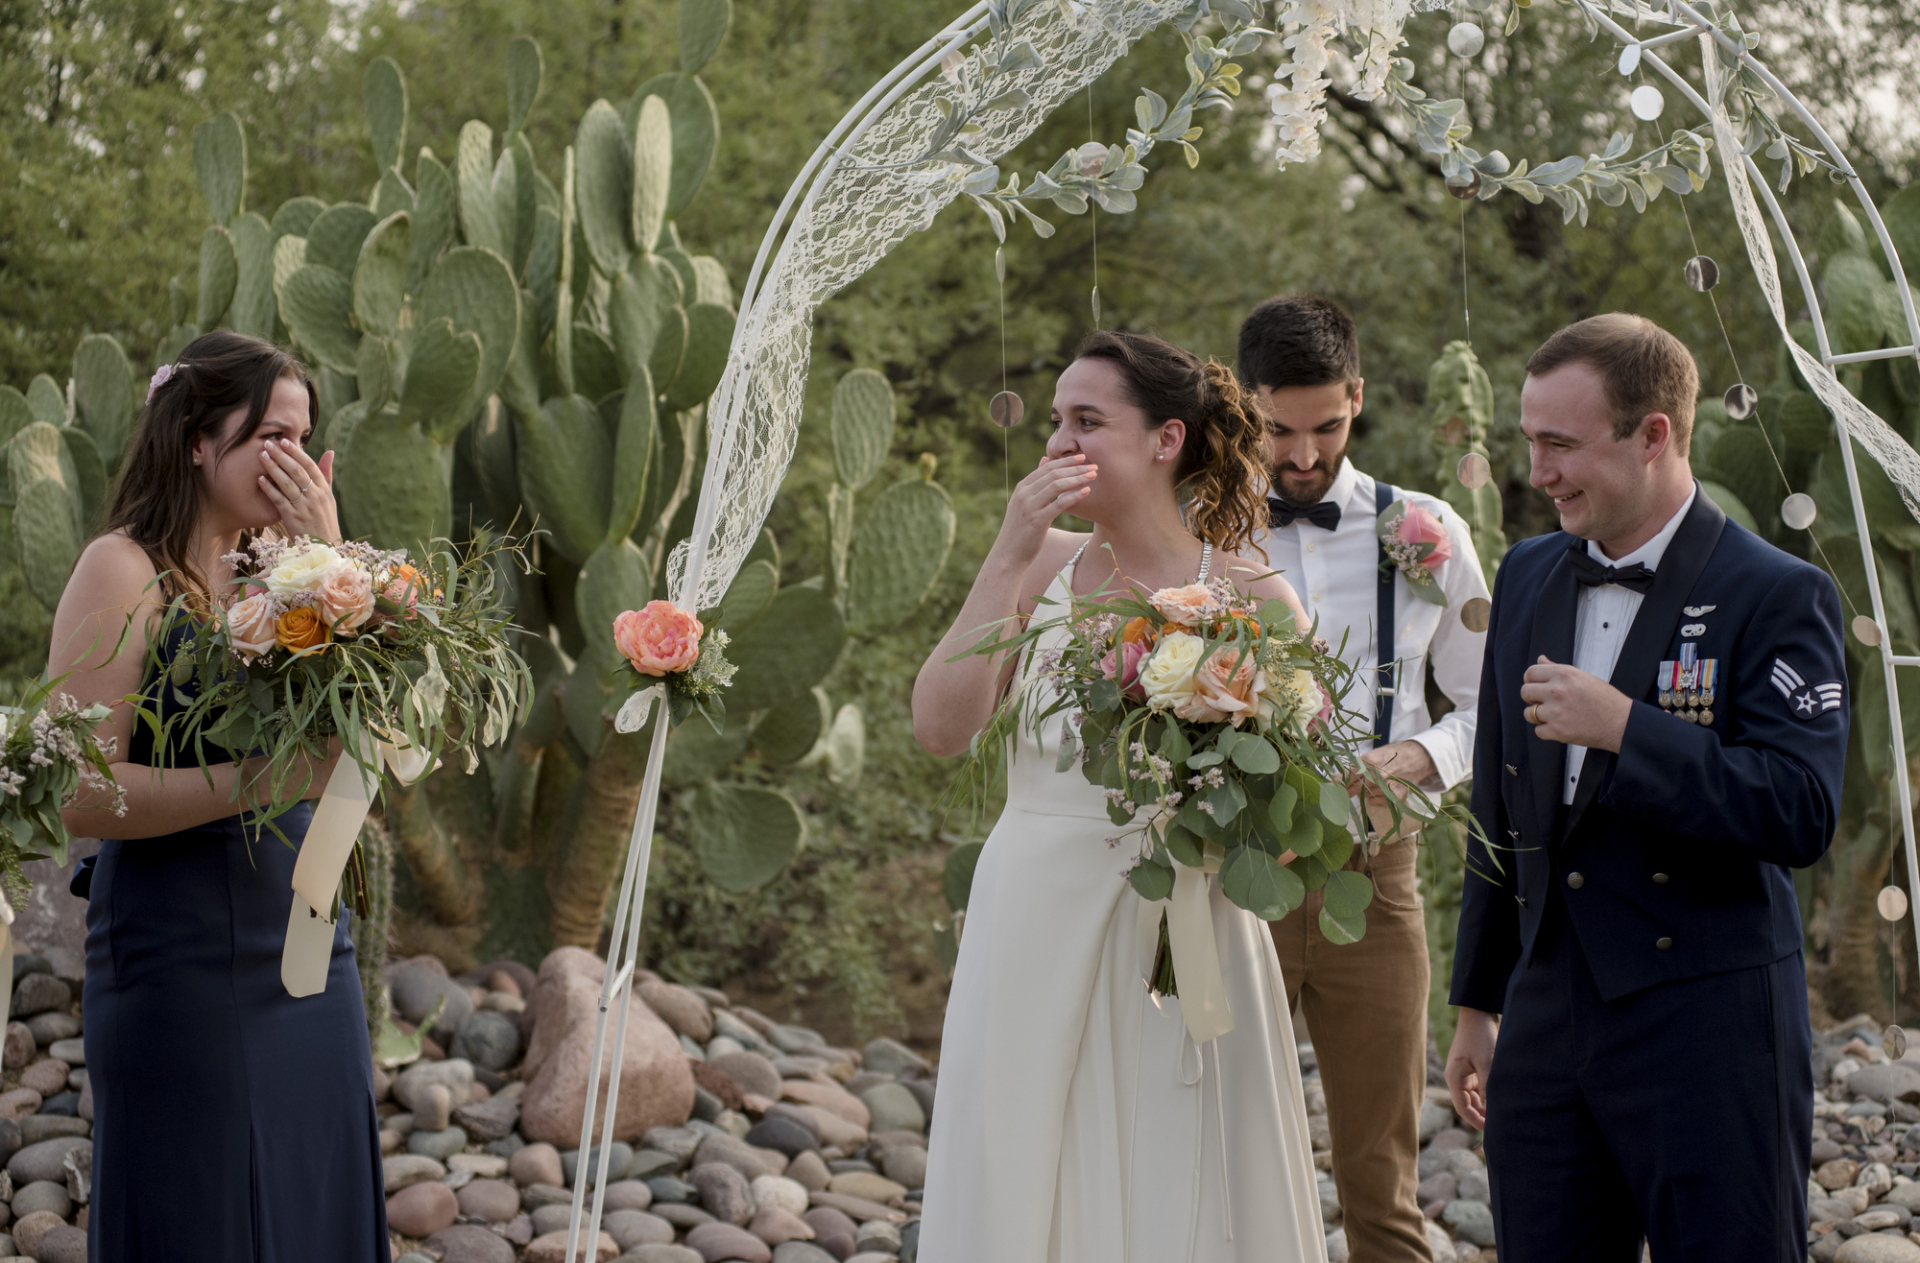 New River, Arizona Elopement Ceremony Image | The bride and her sister share a moment of connection